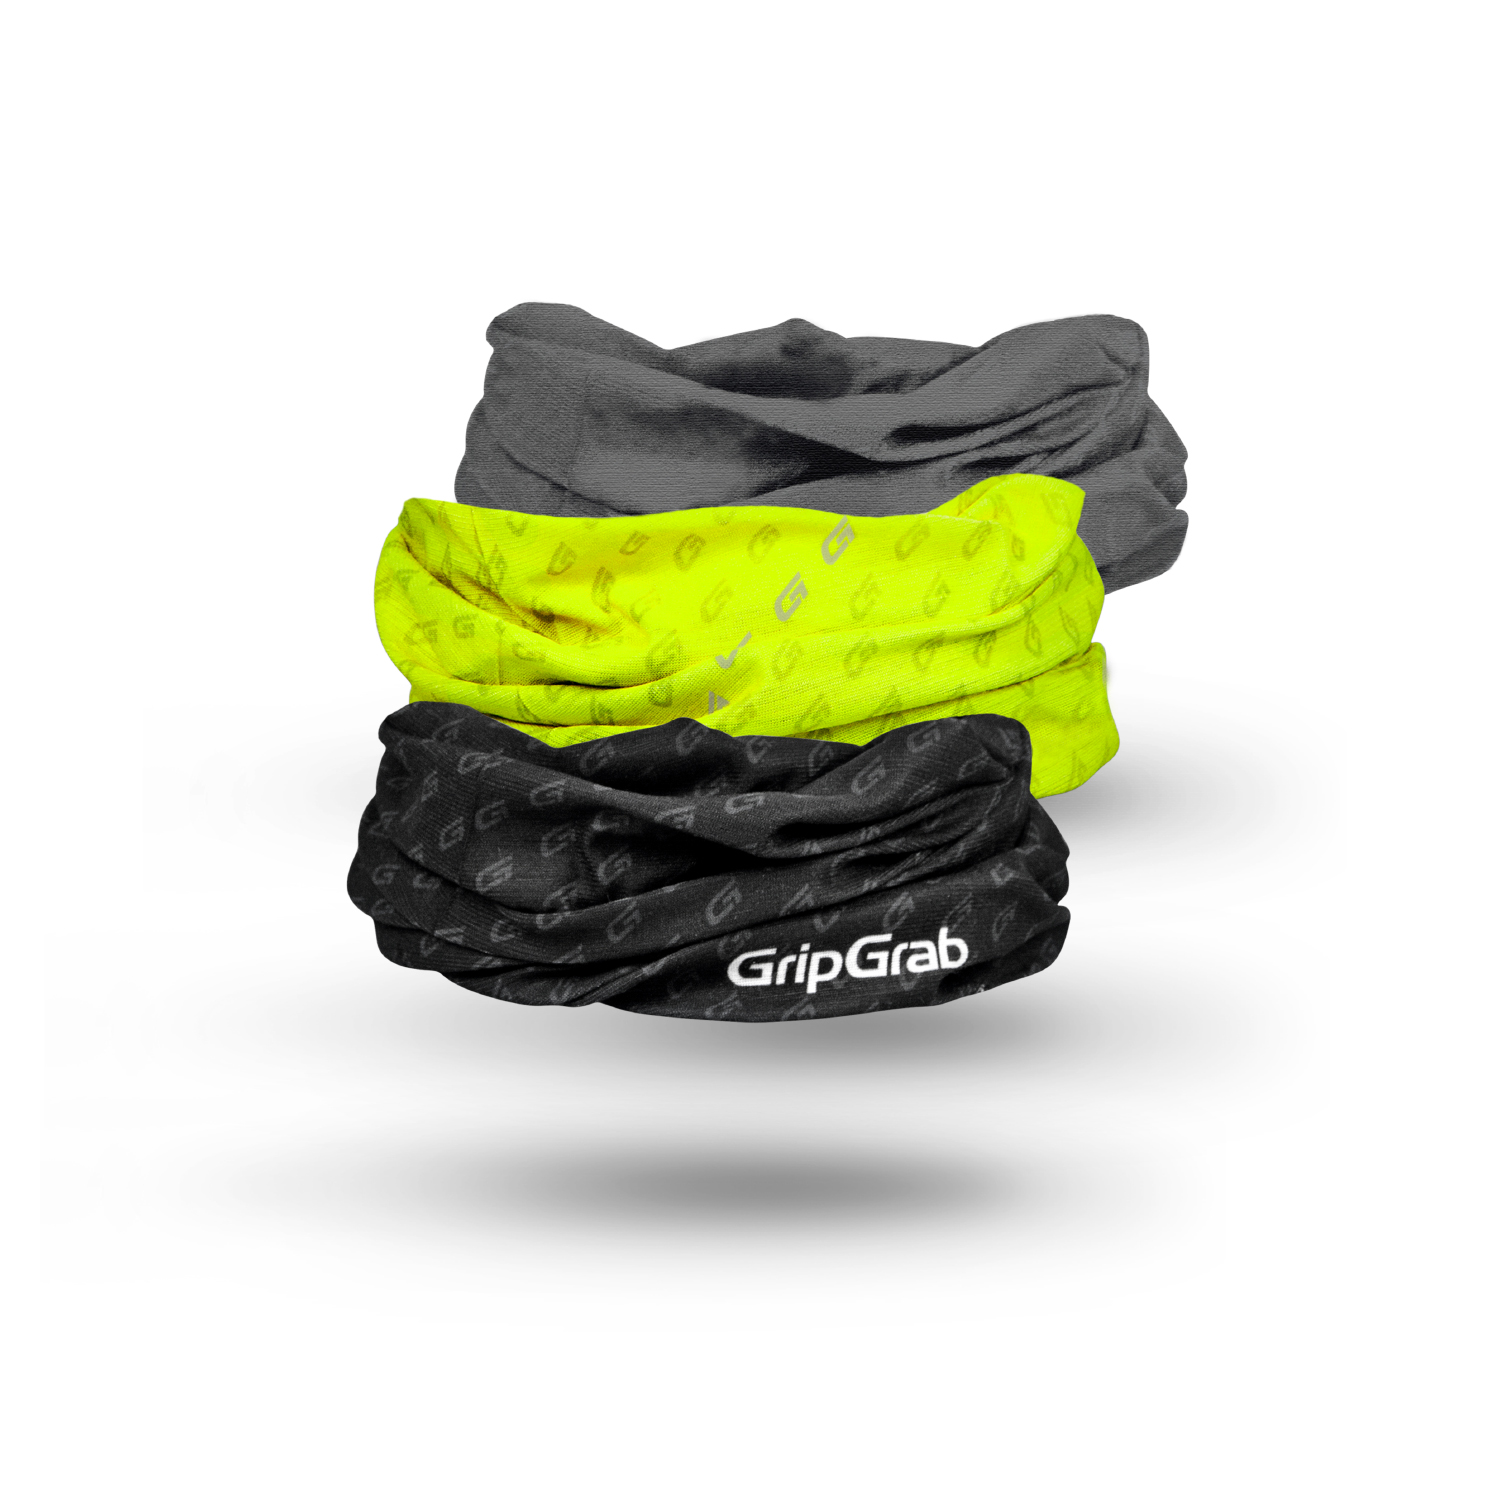 GripGrab HeadGlove Essentials Bundle - 3stk Headglove - Onesize | Headwear